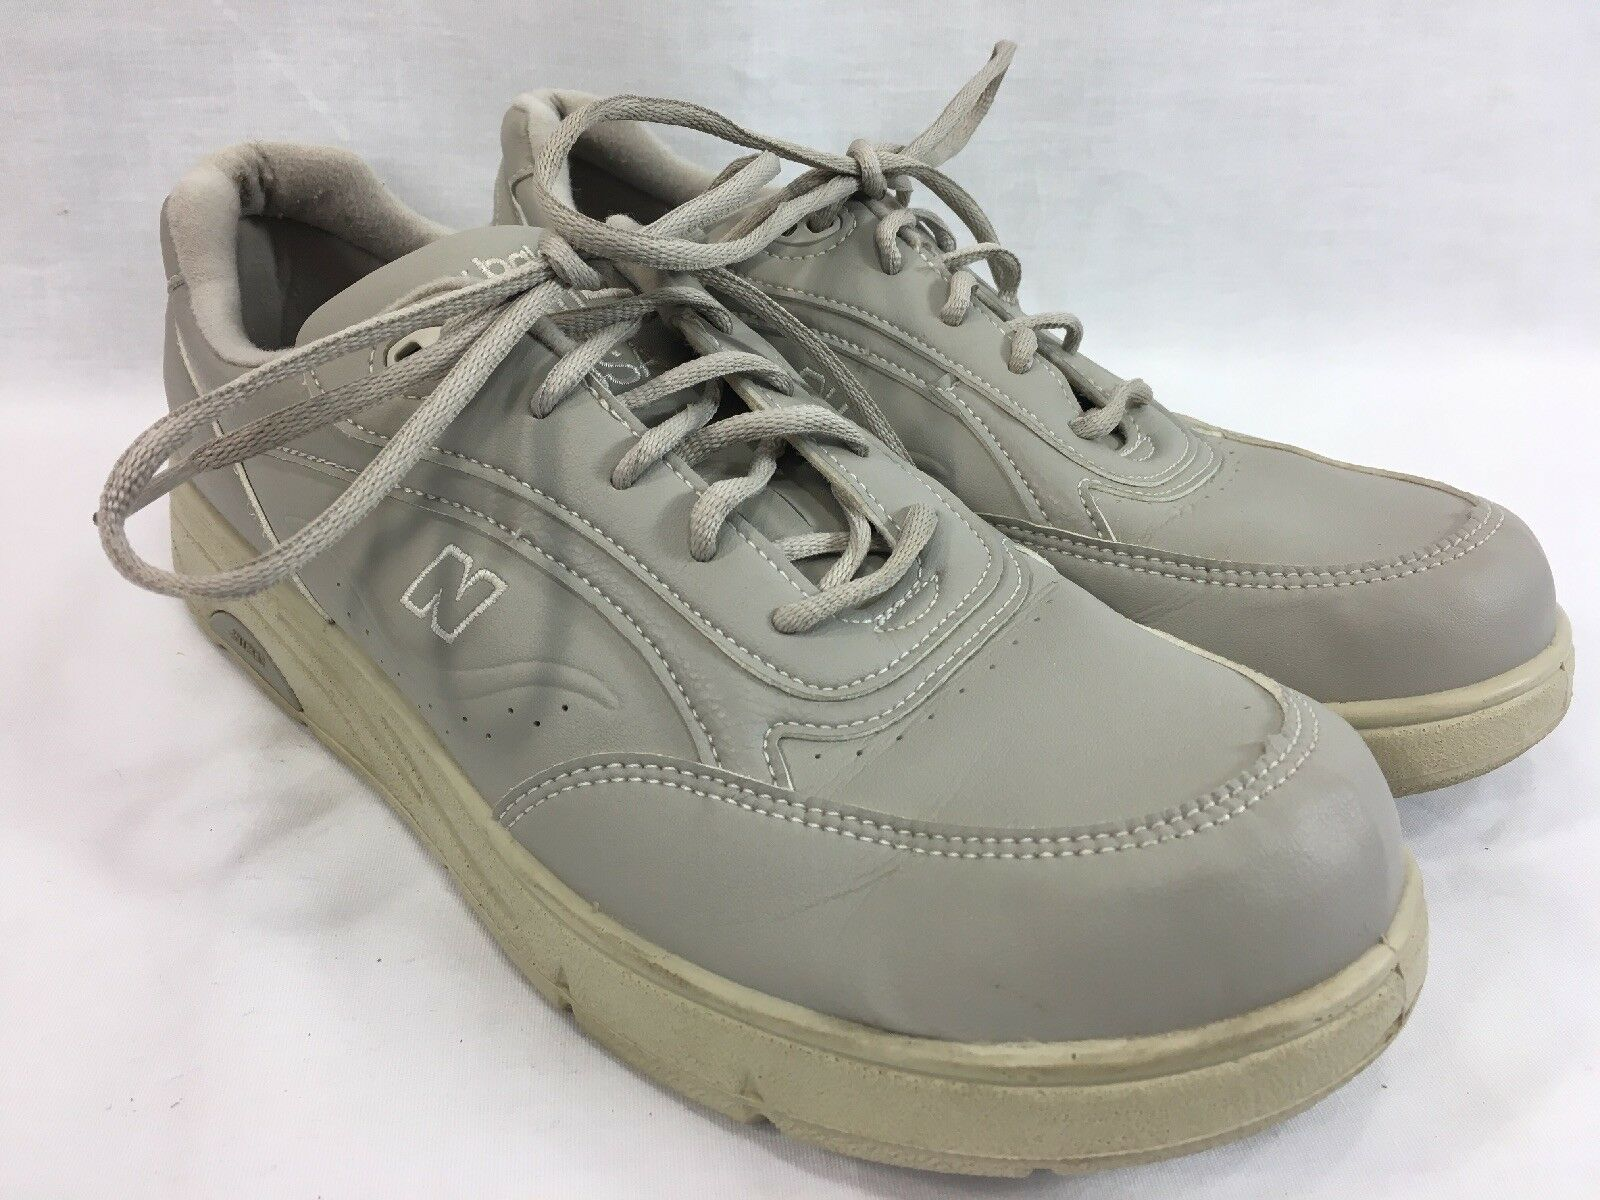 New New New Balance 811 WW811BE Sneakers Schuhes Damenschuhe 12 2A DSL-2 Walking Comfort USA e019f0